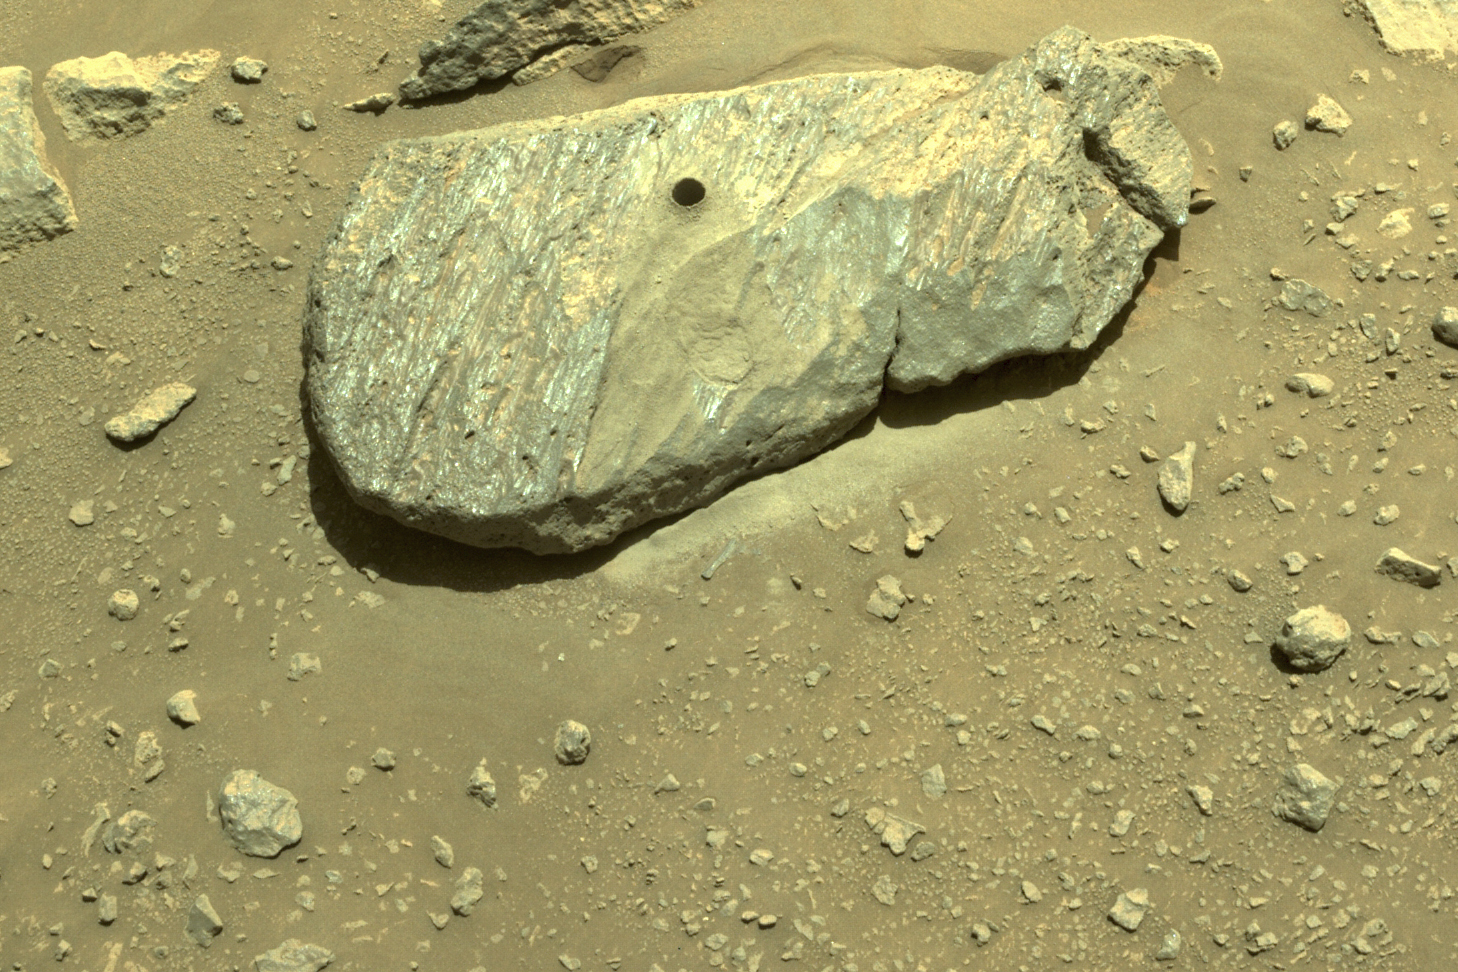 This Sept. 1, 2021 image provided by NASA shows the hole drilled by the Perseverance rover during its second sample-collection attempt in Mars' Jezero Crater. (NASA/JPL-Caltech via Associated Press)